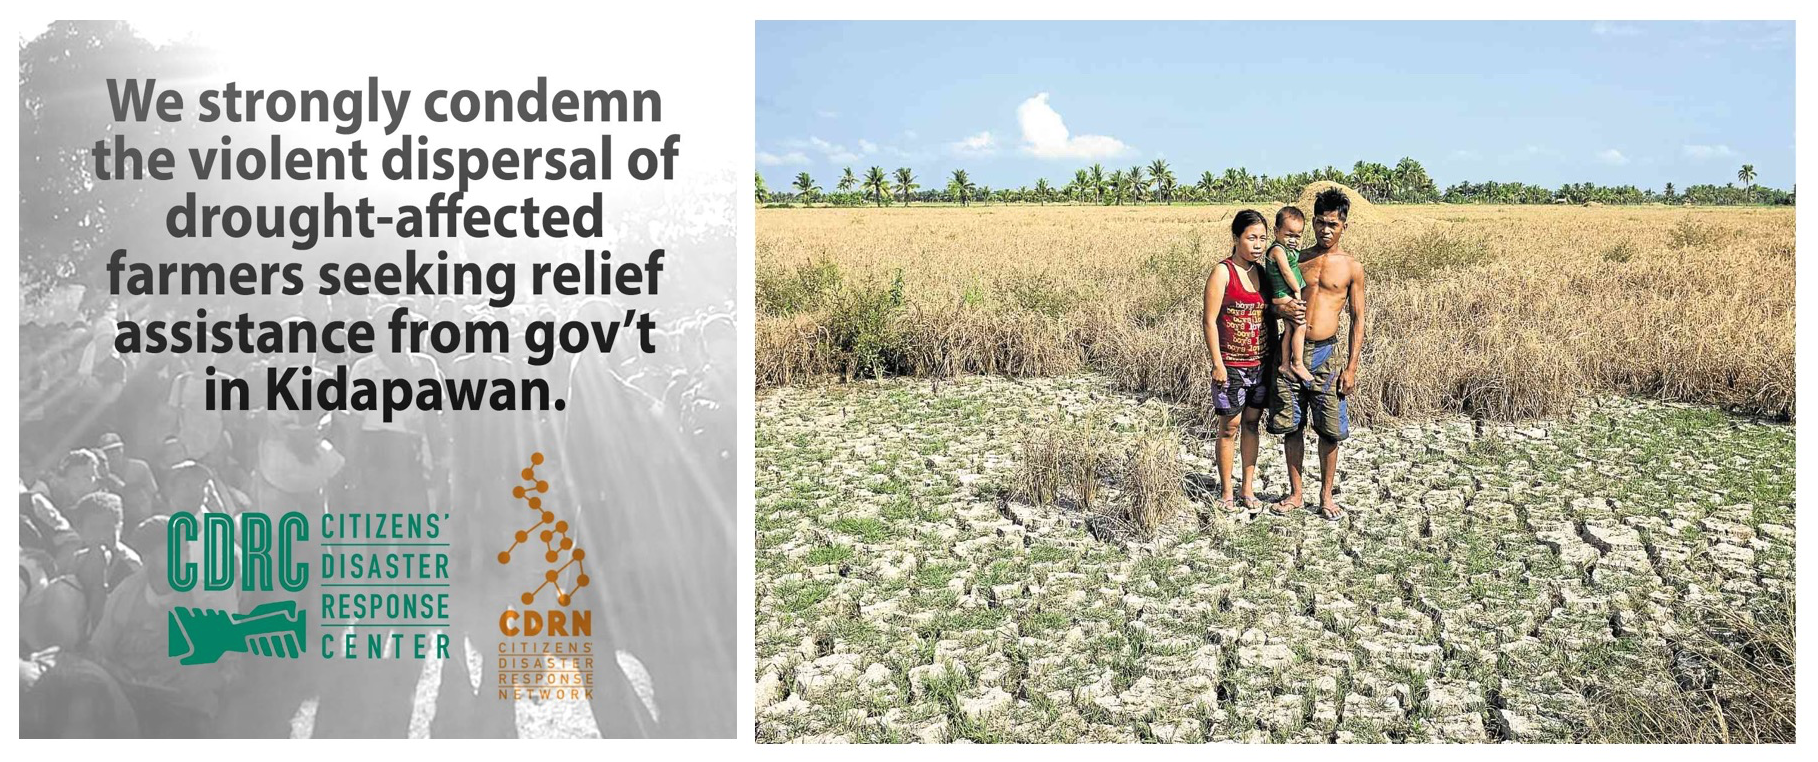 Source: (L) Photo by CDRC; (R) Photo by Karlos Manlupig, Inquirer Mindanao: A farming family in M'lang, North Cotabato - April 2016